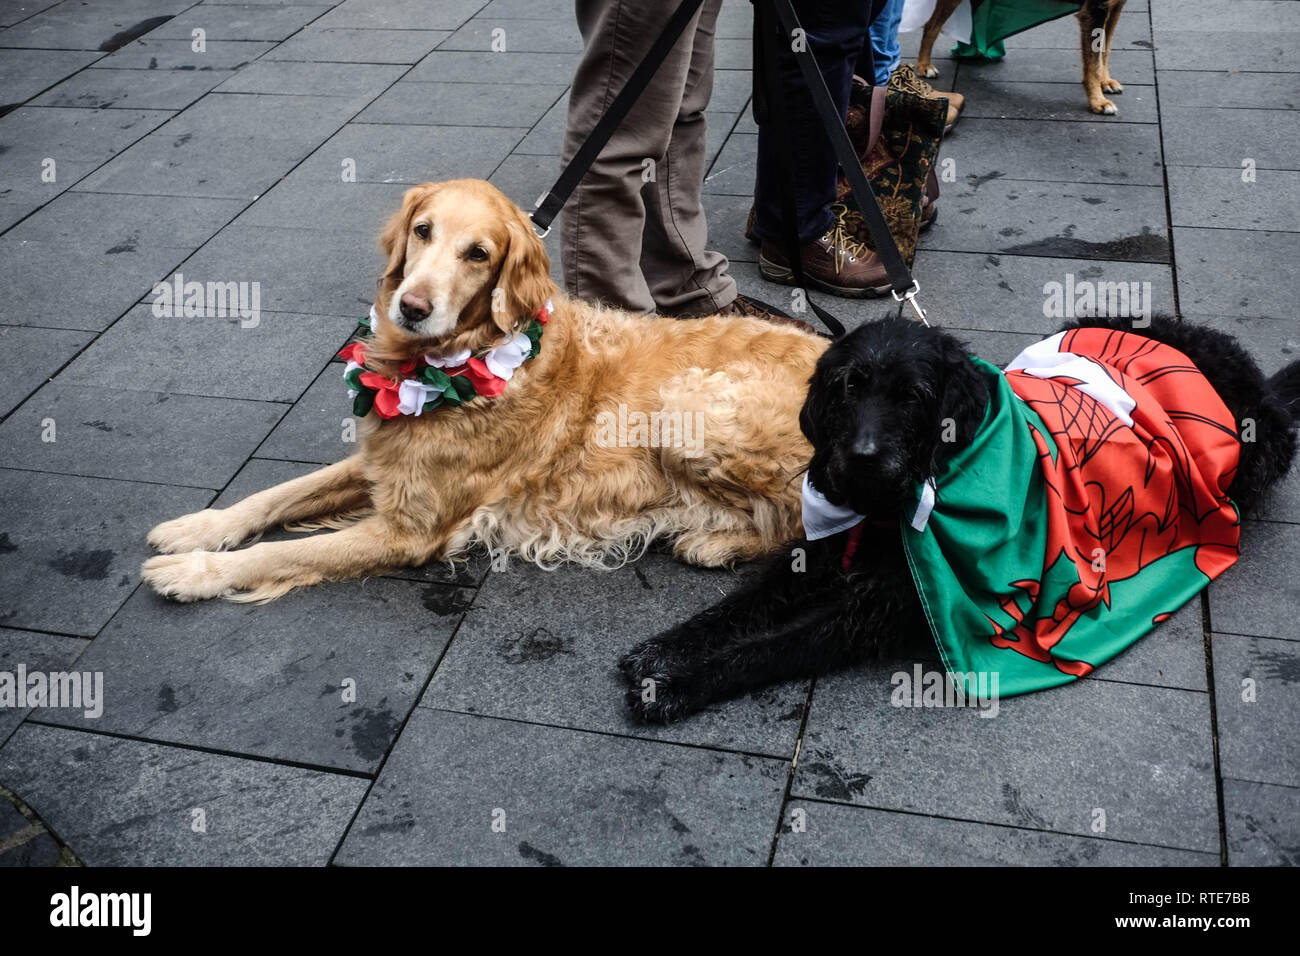 Cardiff, Wales, UK. 1st March 2019. Celebrations for St Davids Day in cardiff city centre, March 1st 2019, Cardiff, UK Credit: Shaun Jones/Alamy Live News - Stock Image